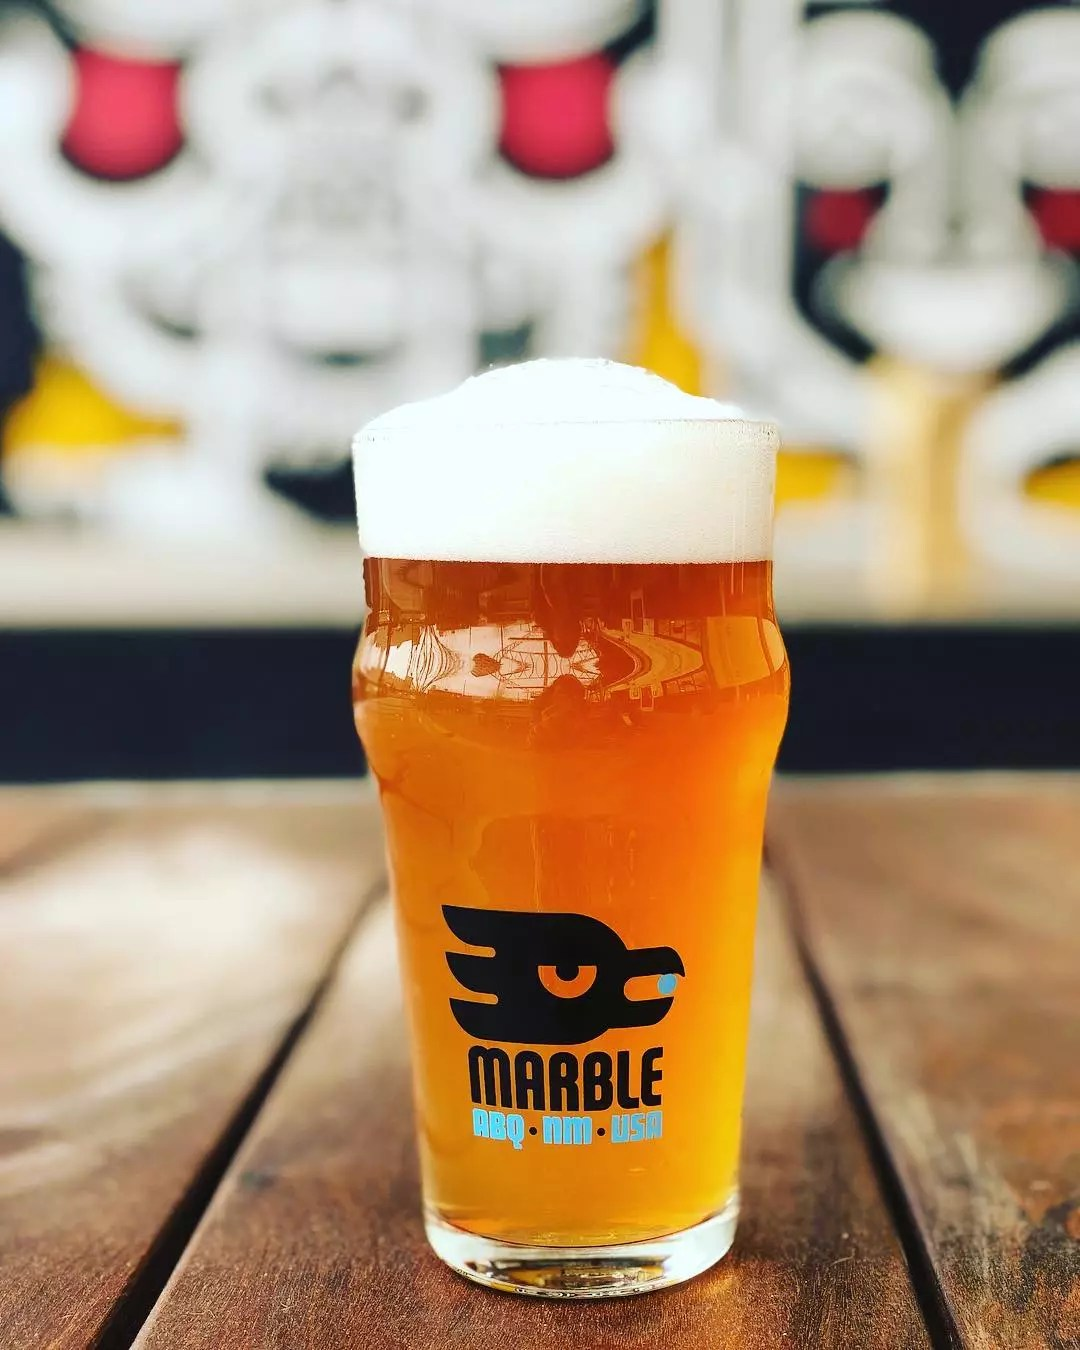 Closeup of pint of amber-colored beer with Marble Brewery logo on the glass. Photo by Instagram user @marblebrewery